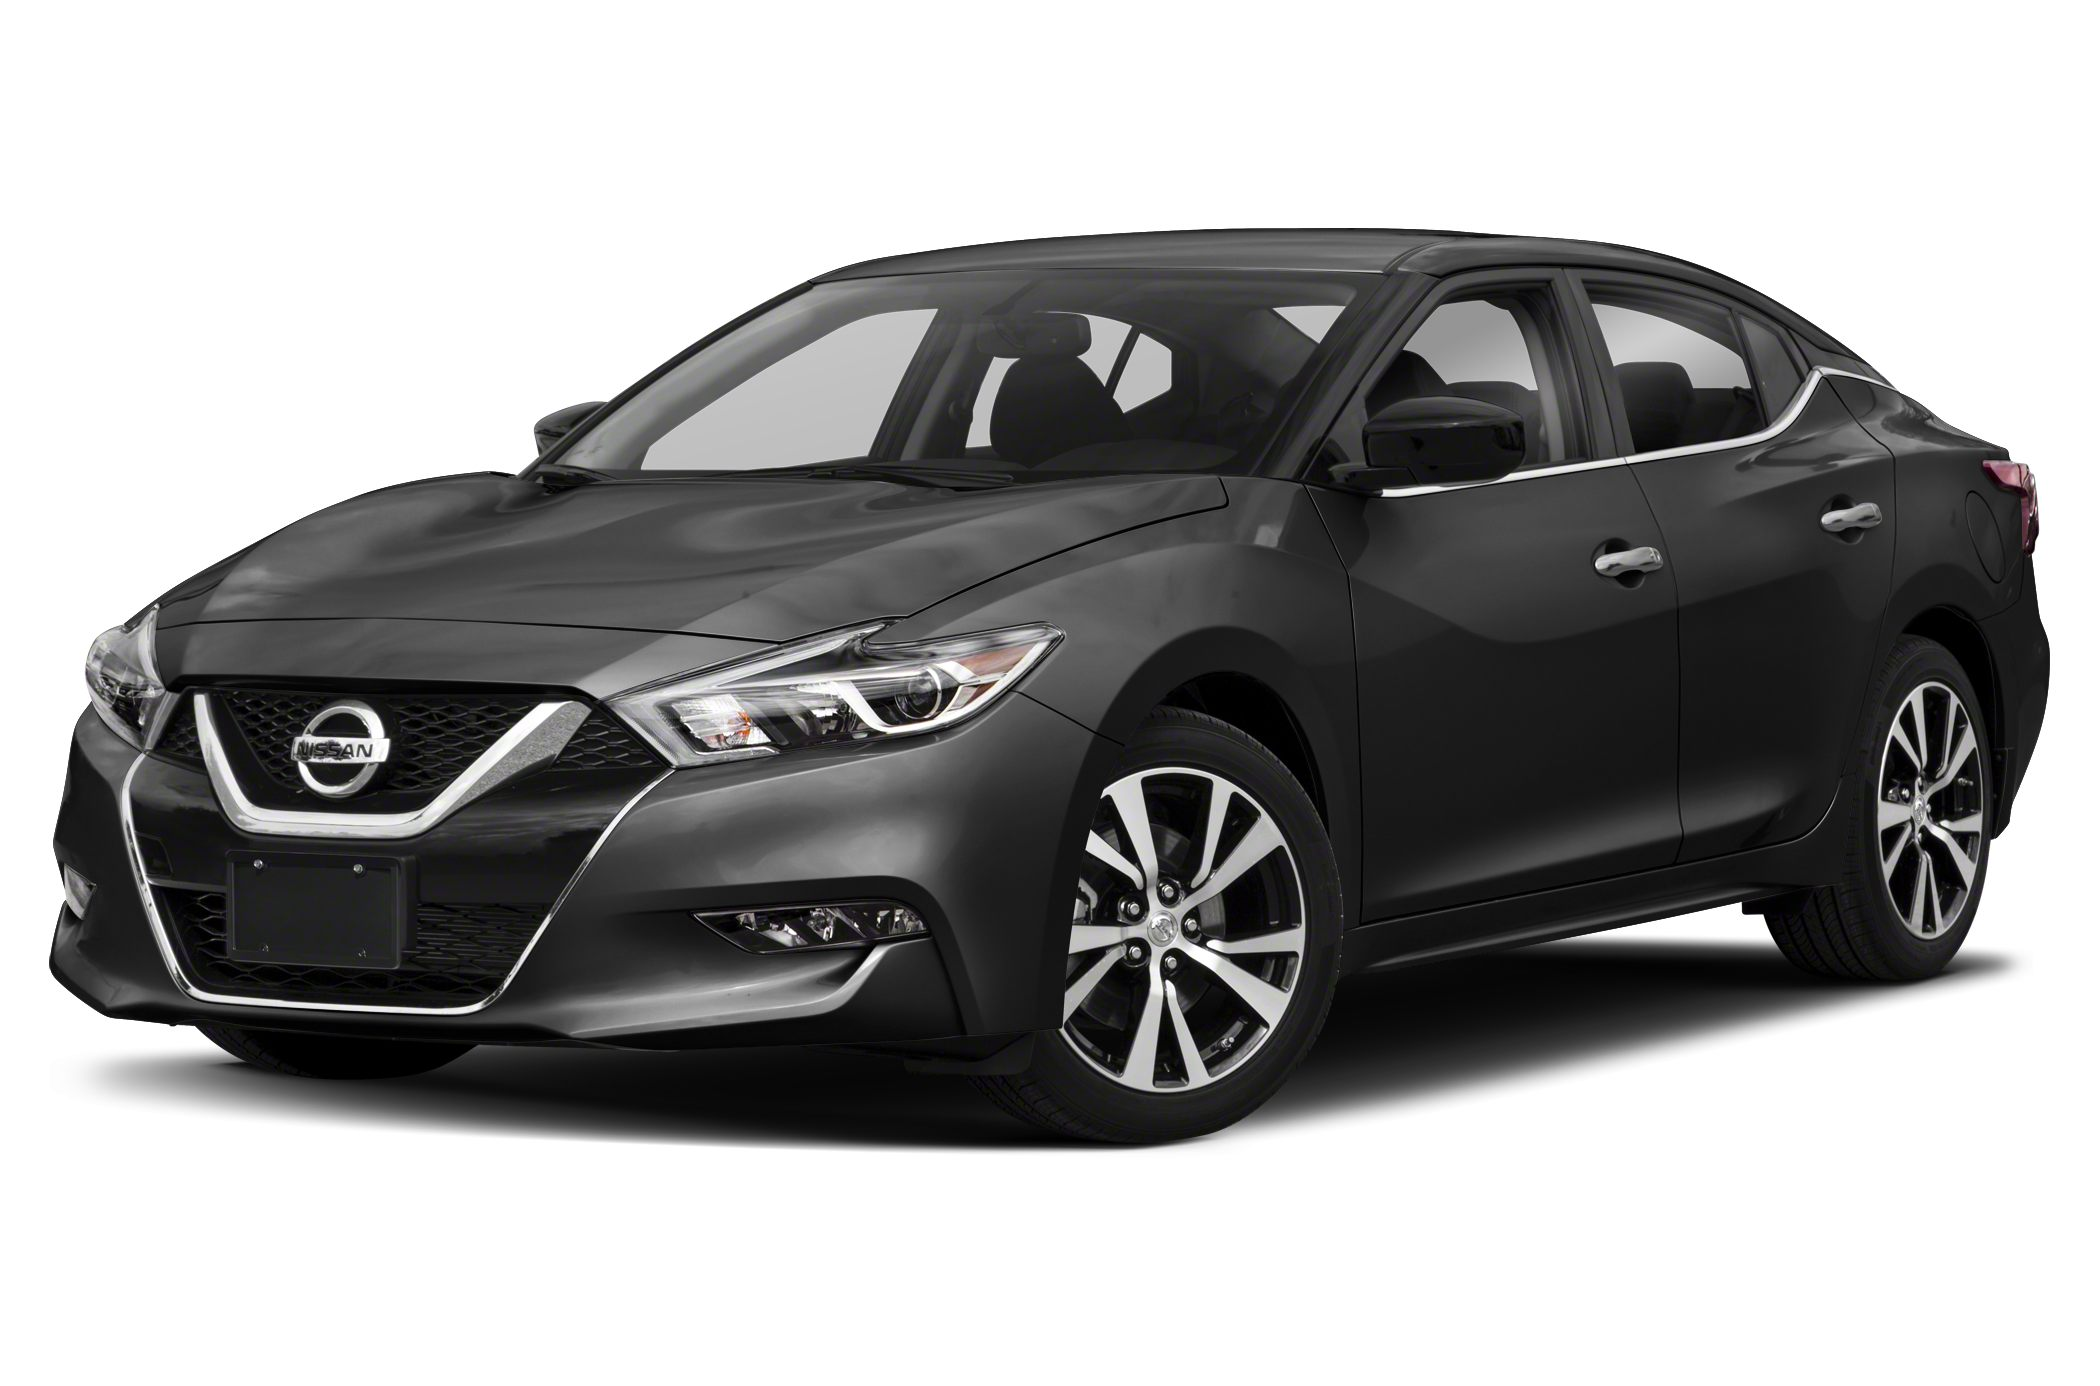 2018 Nissan Maxima Deals, Prices, Incentives & Leases ...